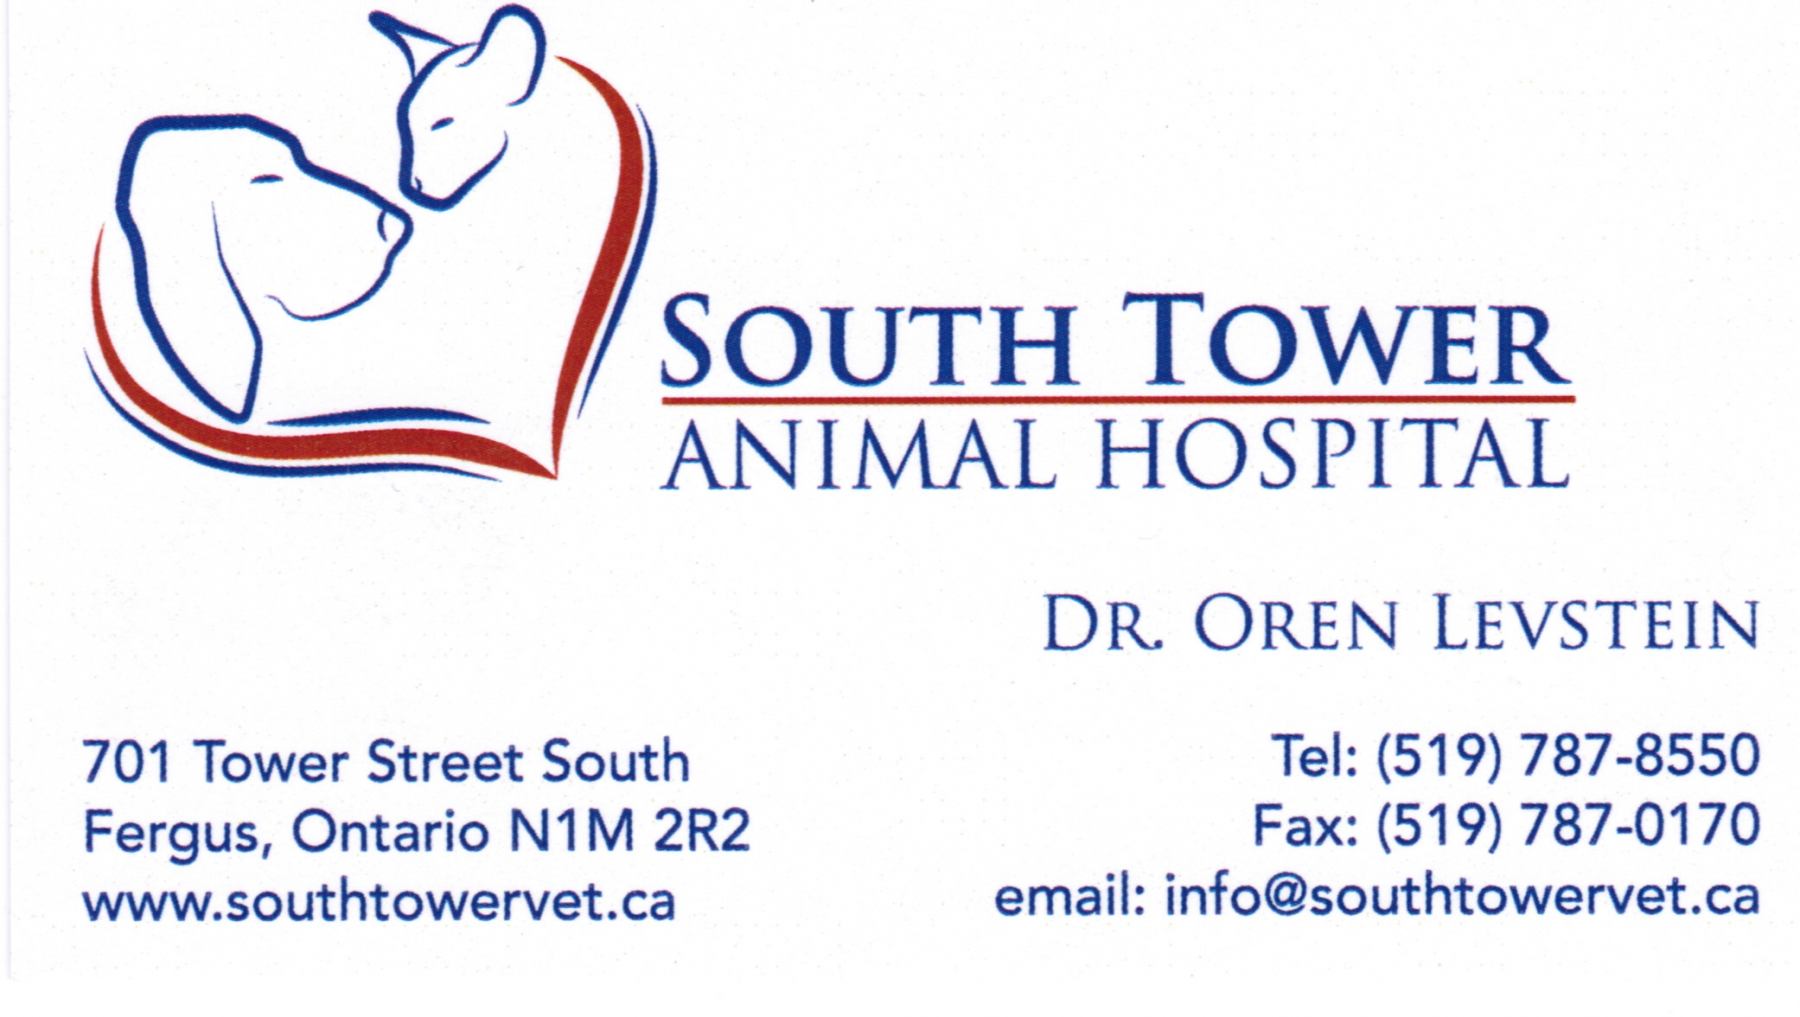 South Tower Animal Hospital